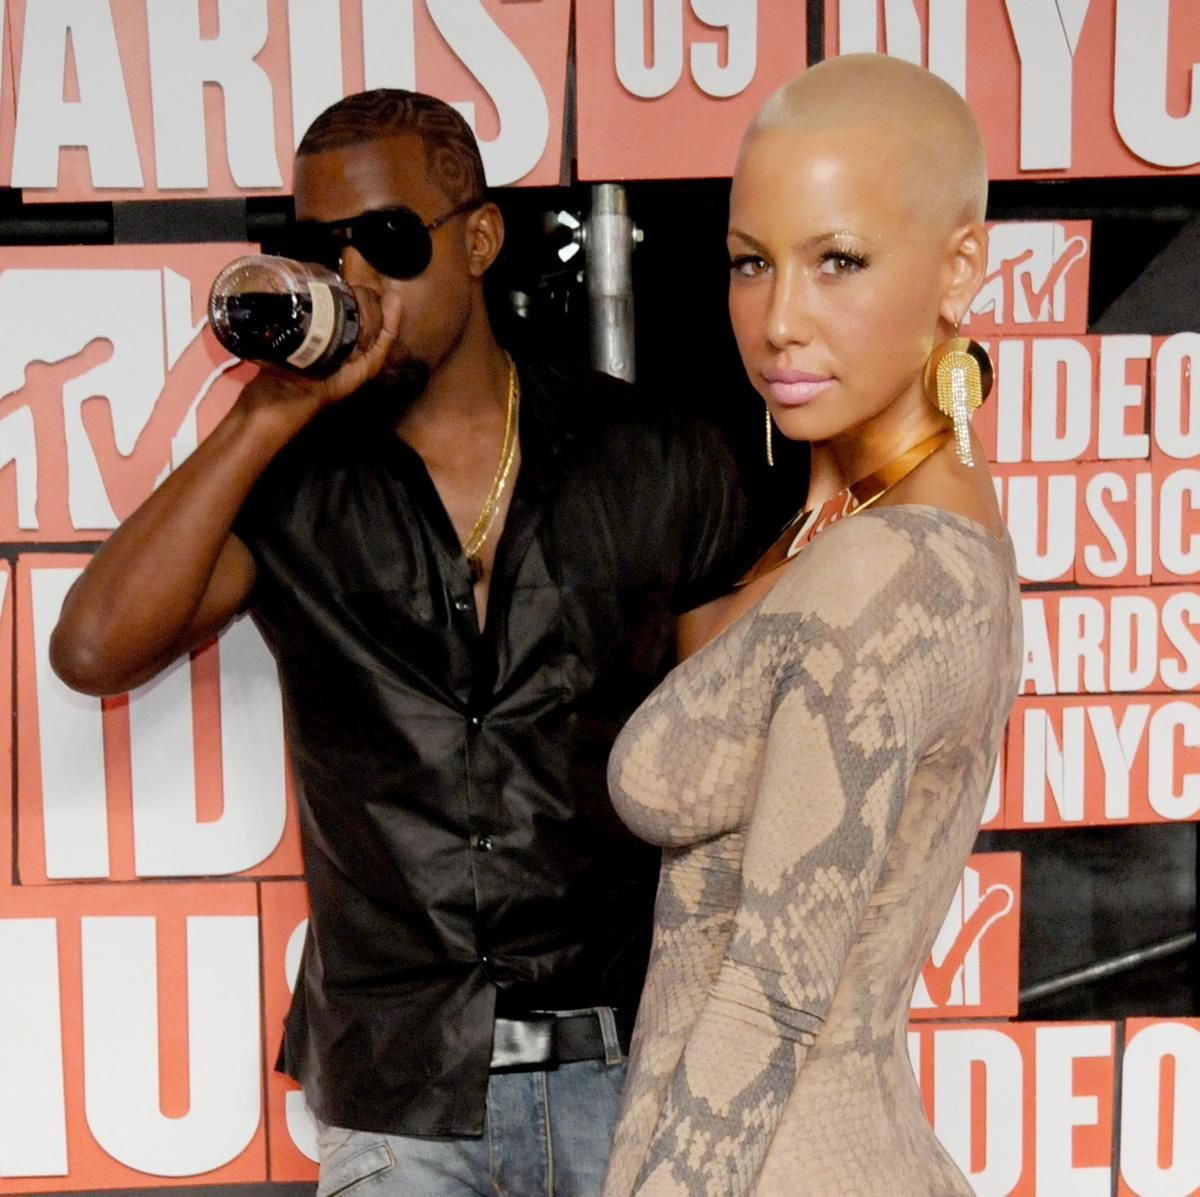 Look back at Kanye West and Amber Rose's crazy